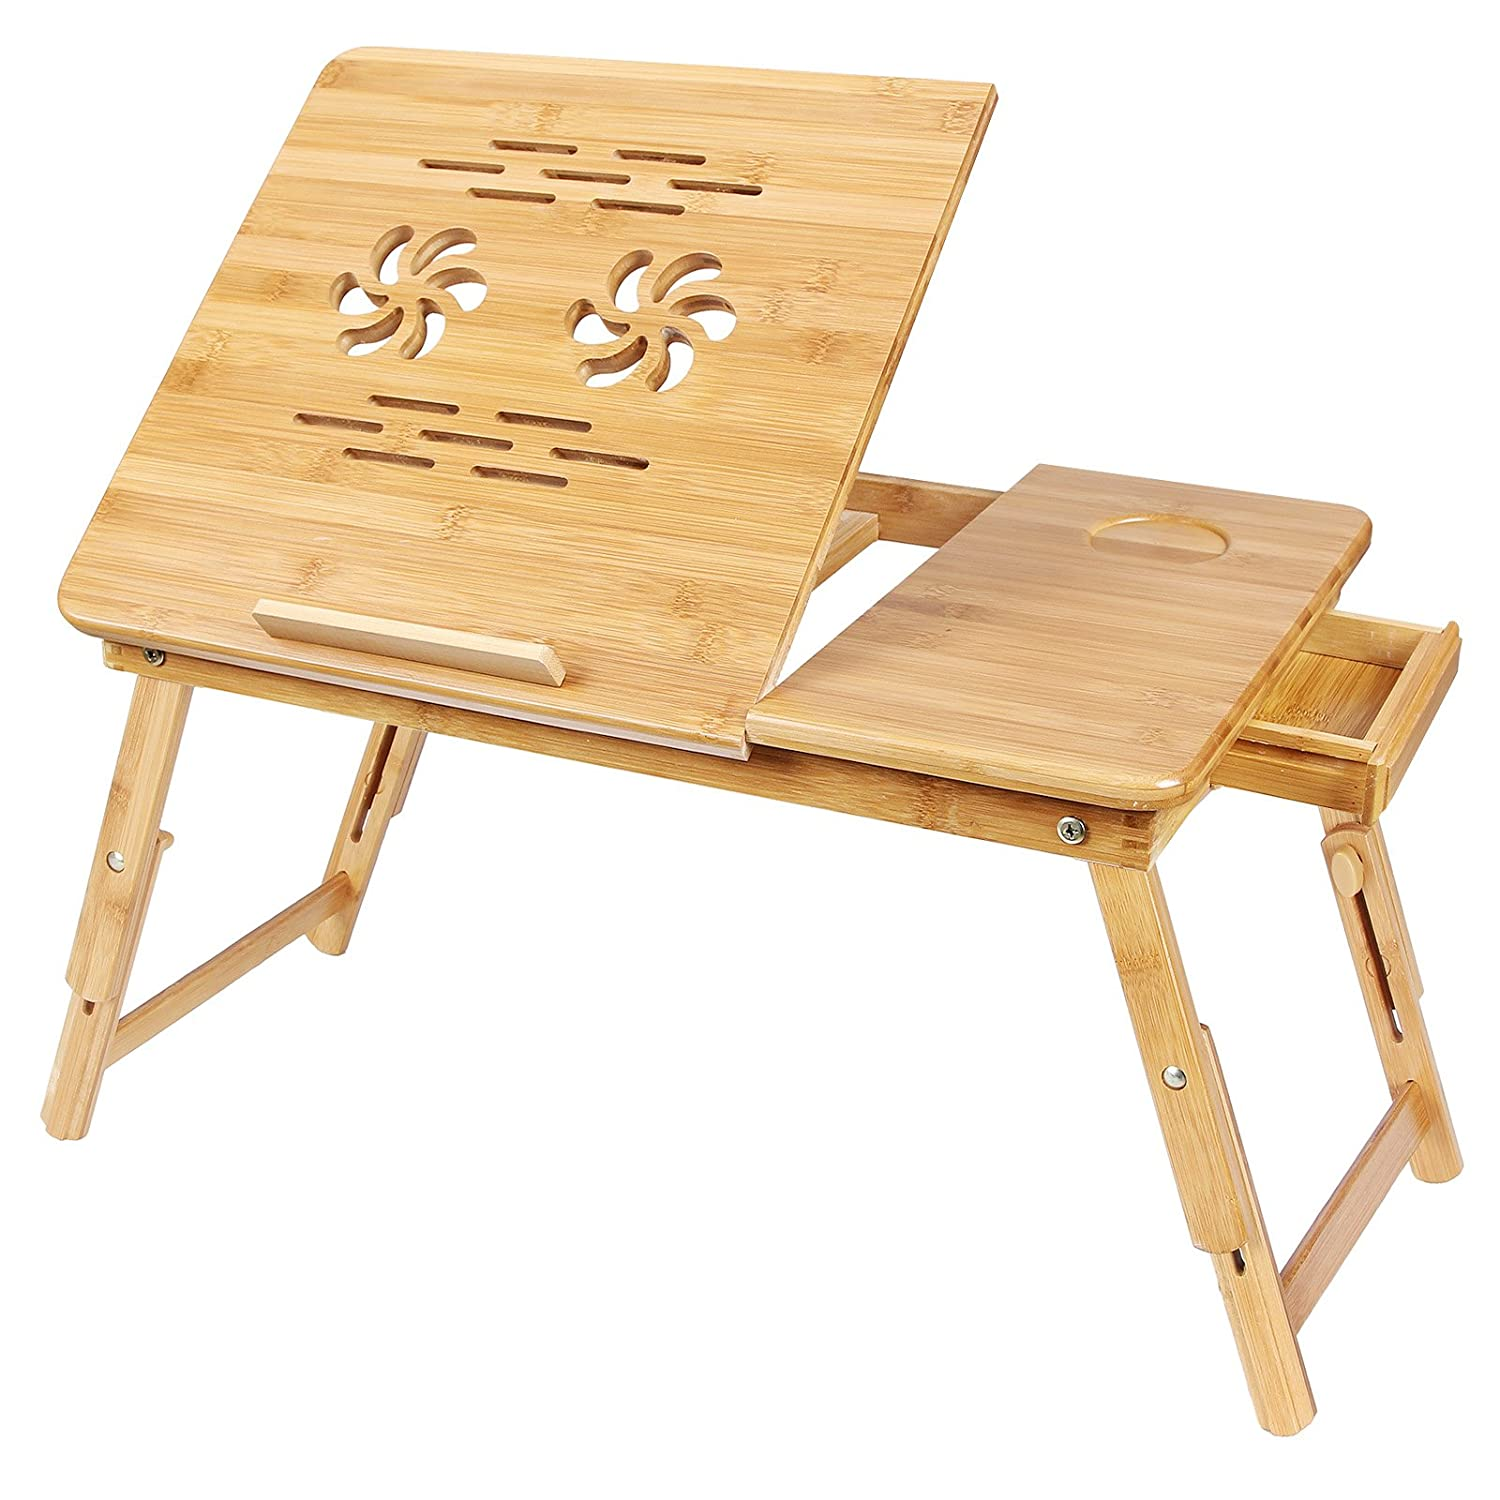 SONGMICS Bamboo Laptop Desk Serving Bed Tray Breakfast Table Tilting Top with Drawer ULLD001